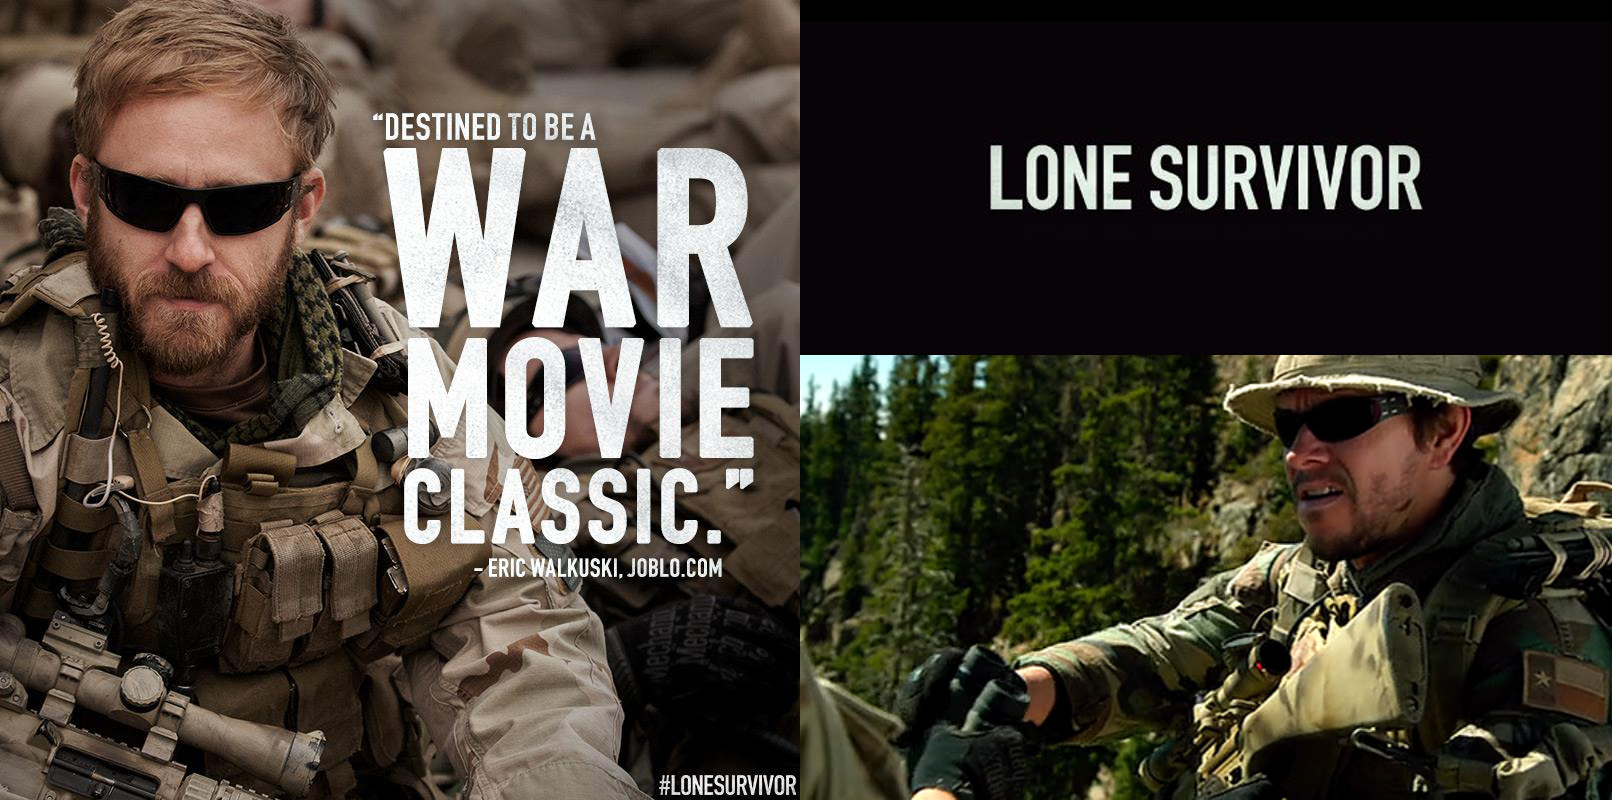 lone-survivor-3-pic-together.jpg